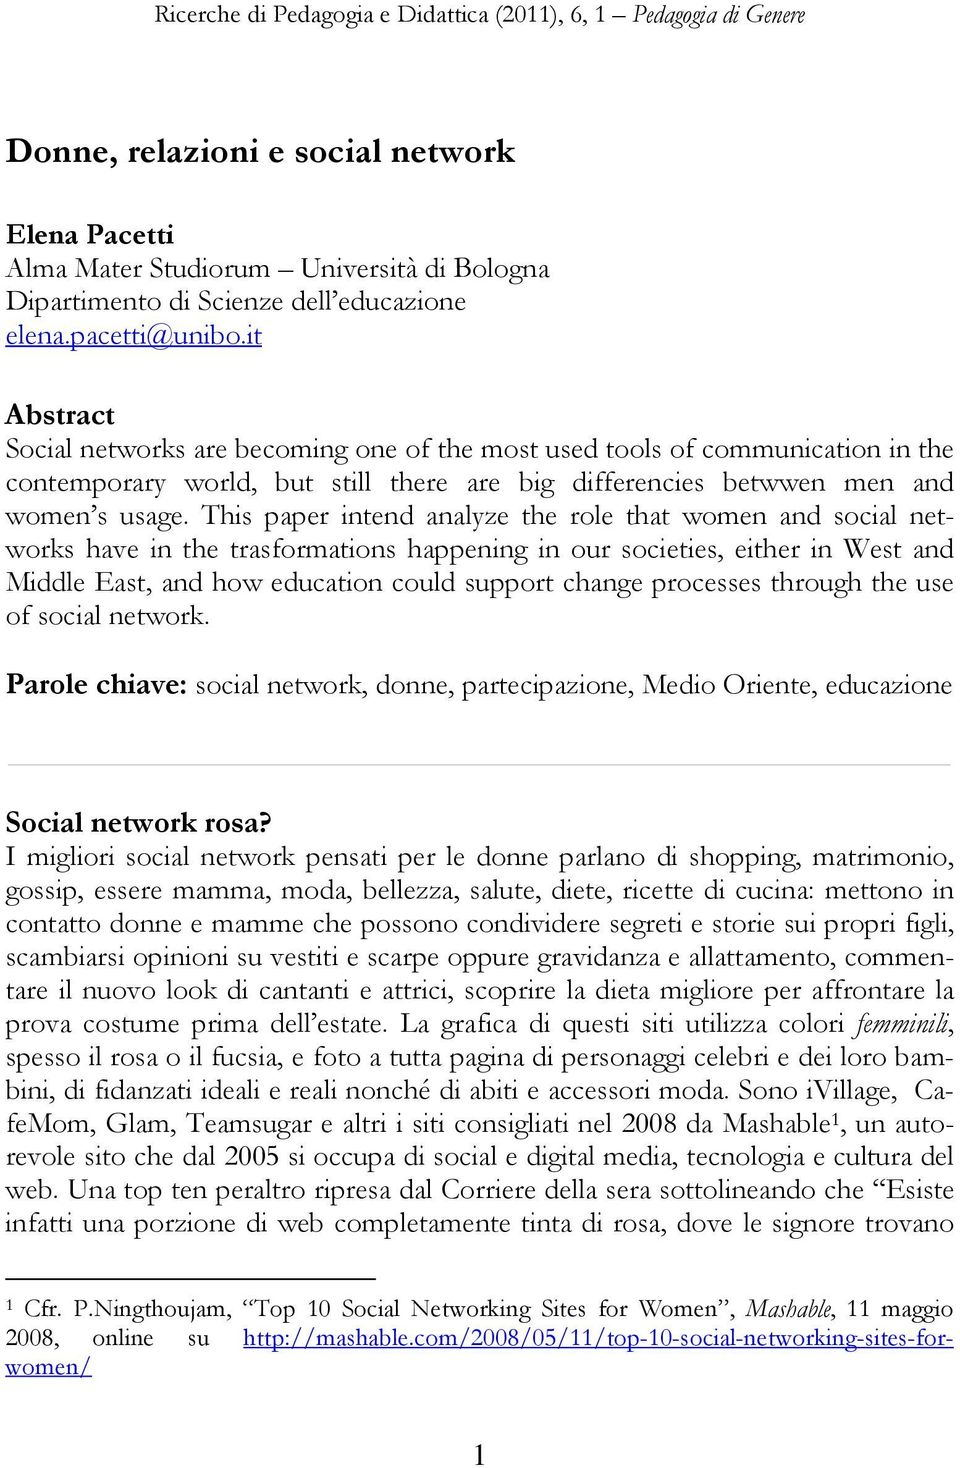 This paper intend analyze the role that women and social networks have in the trasformations happening in our societies, either in West and Middle East, and how education could support change